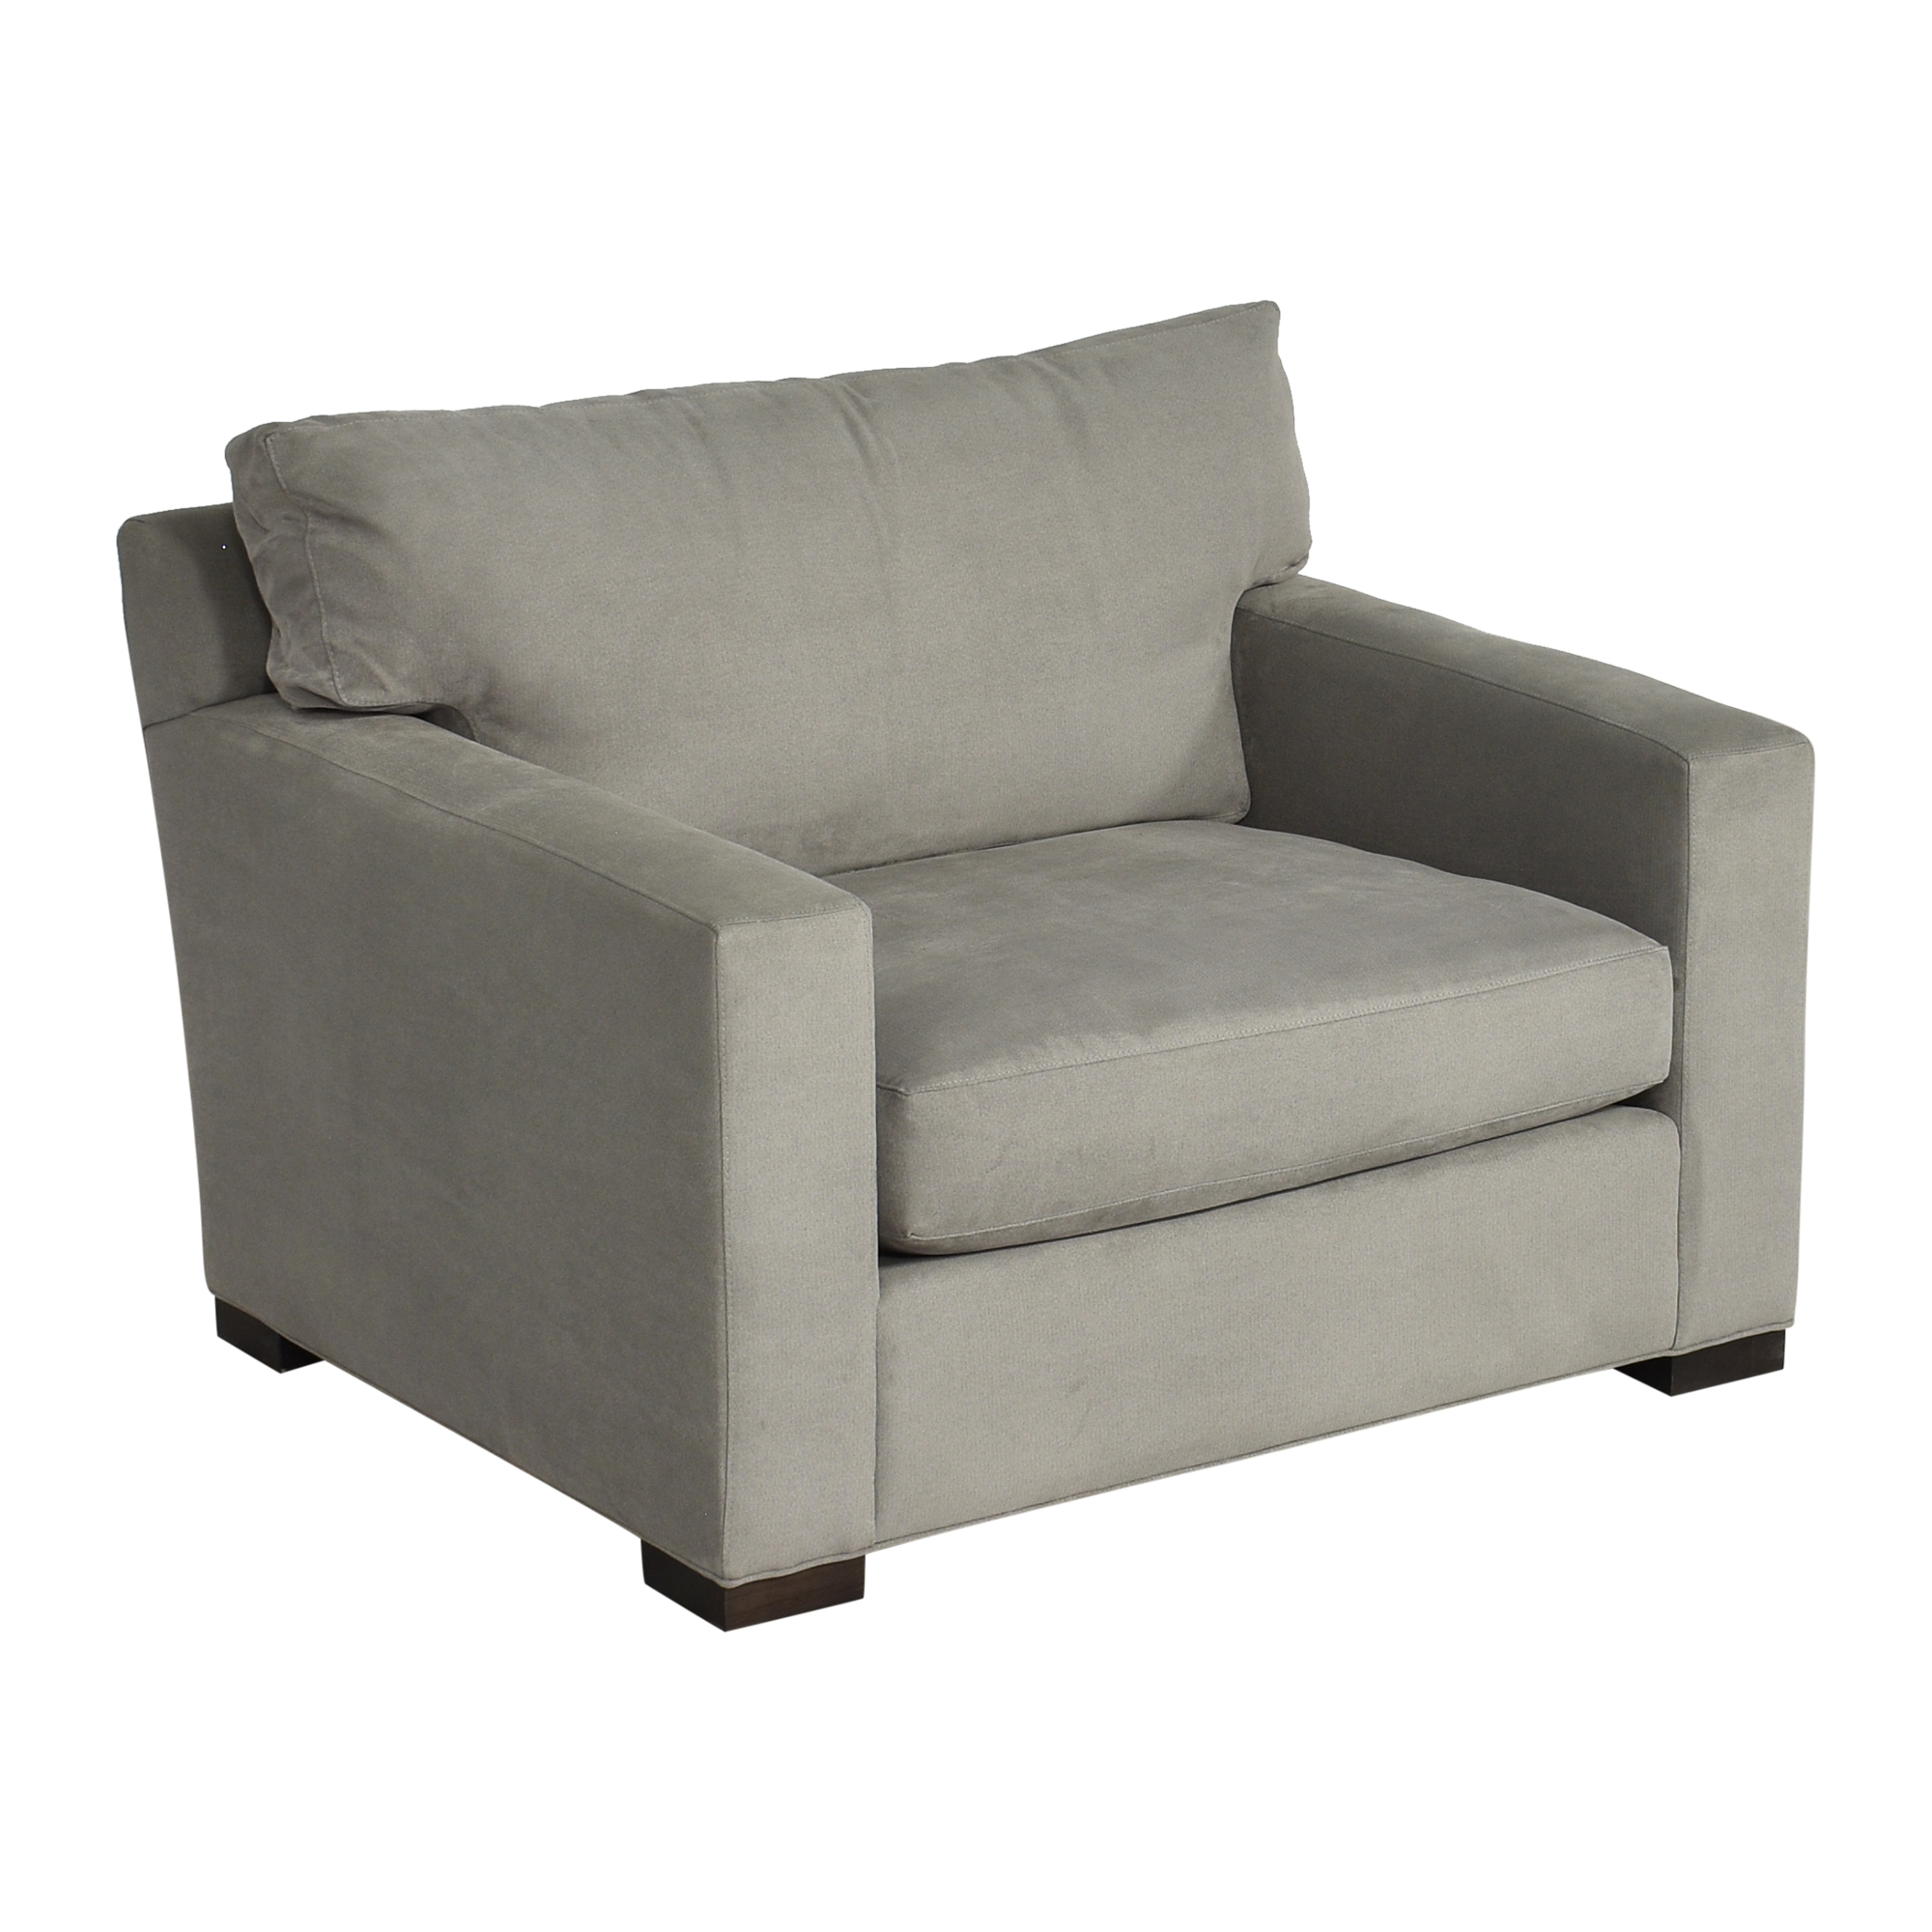 Crate & Barrel Crate & Barrel Axis Chair for sale